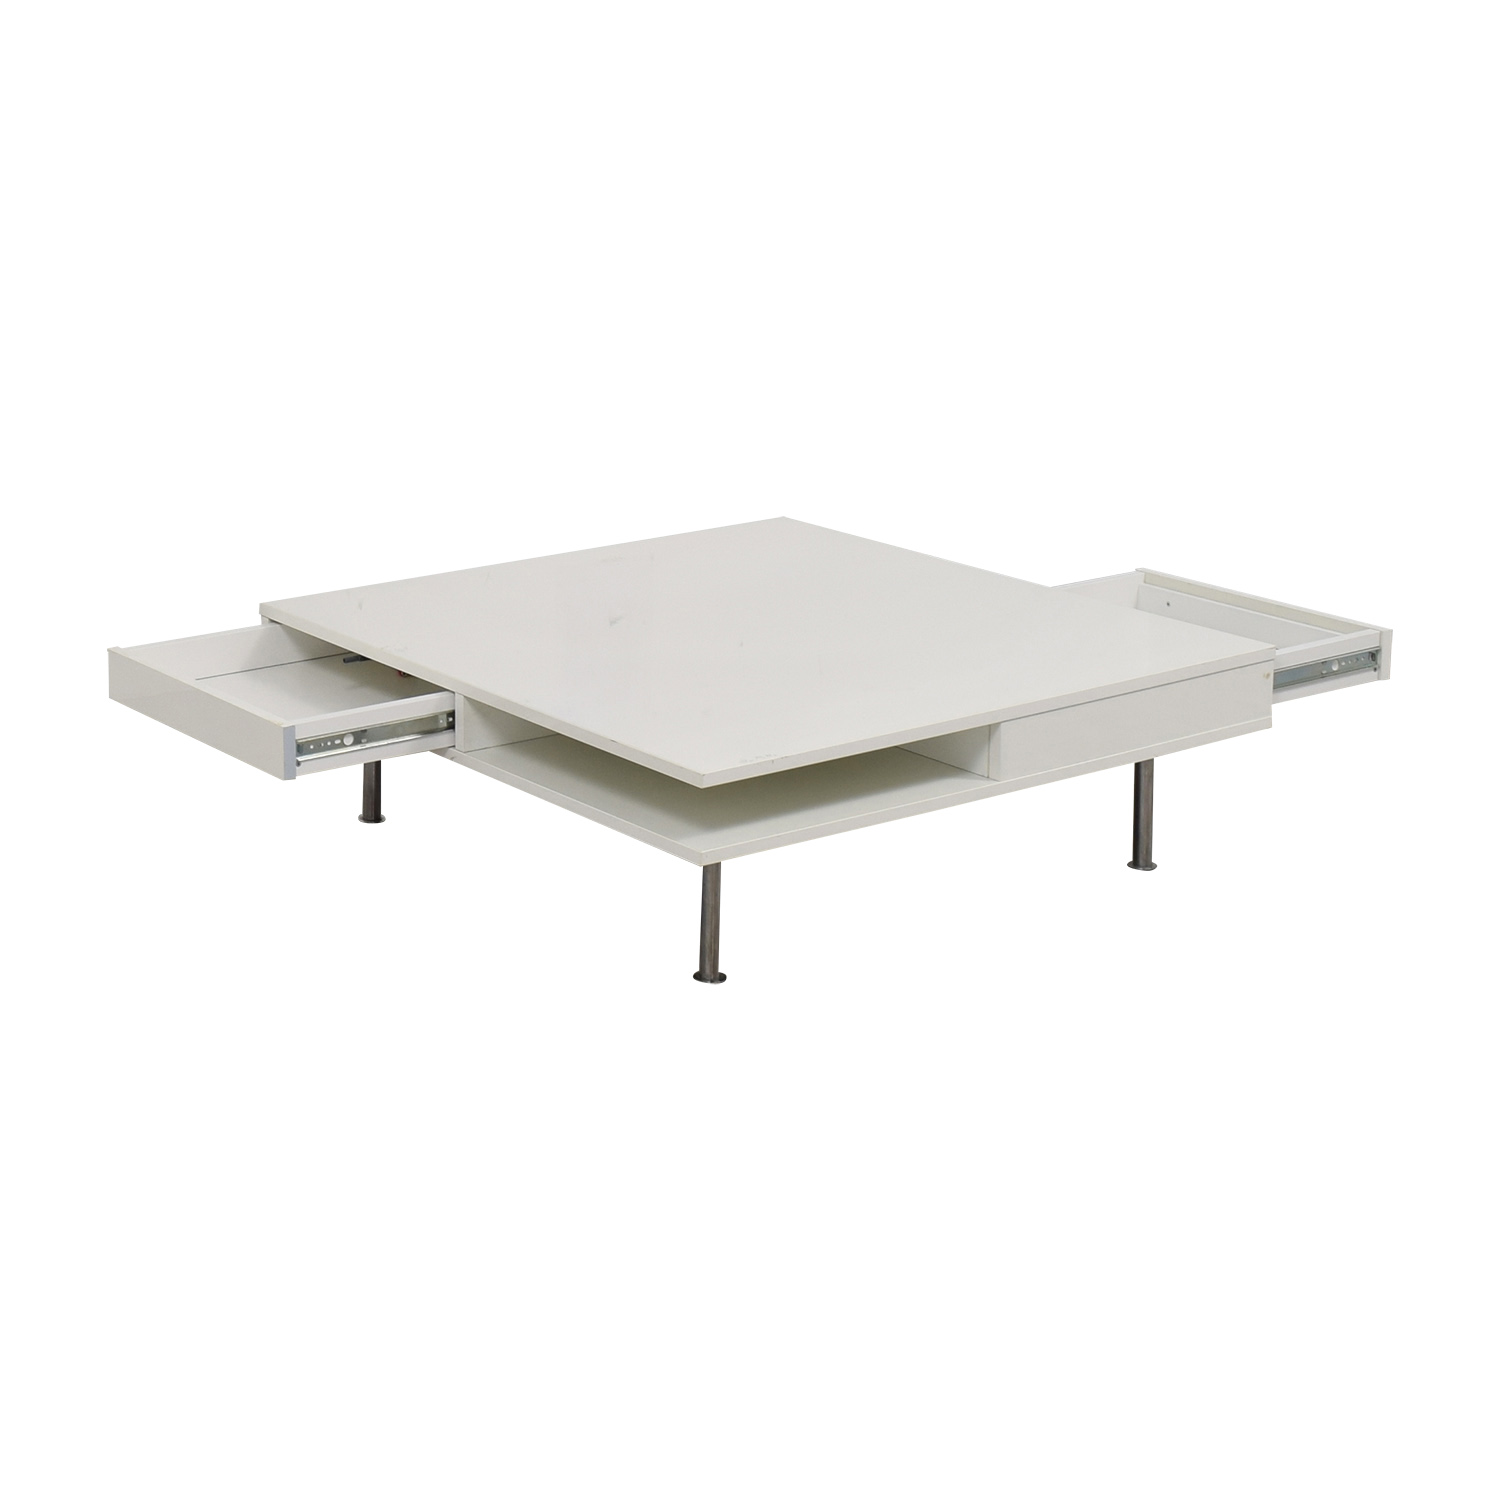 5086bc5c9fbc 61% OFF - IKEA IKEA White Two-Drawer Low Coffee Table   Tables